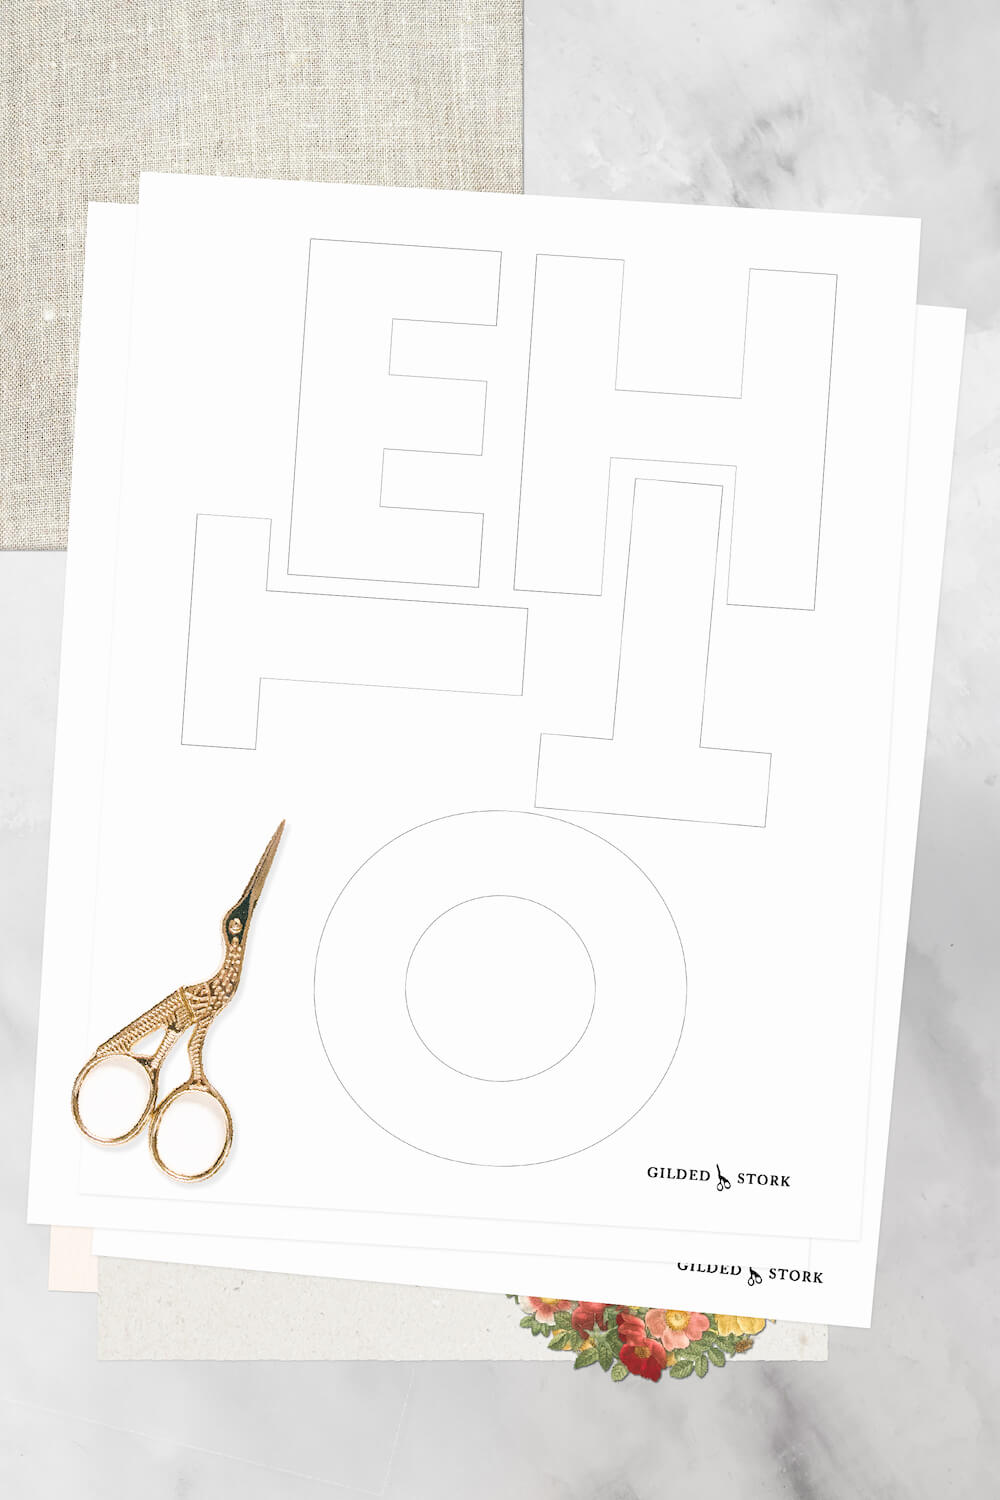 download the free Cricut SVG file or printable PDF for hand cutting